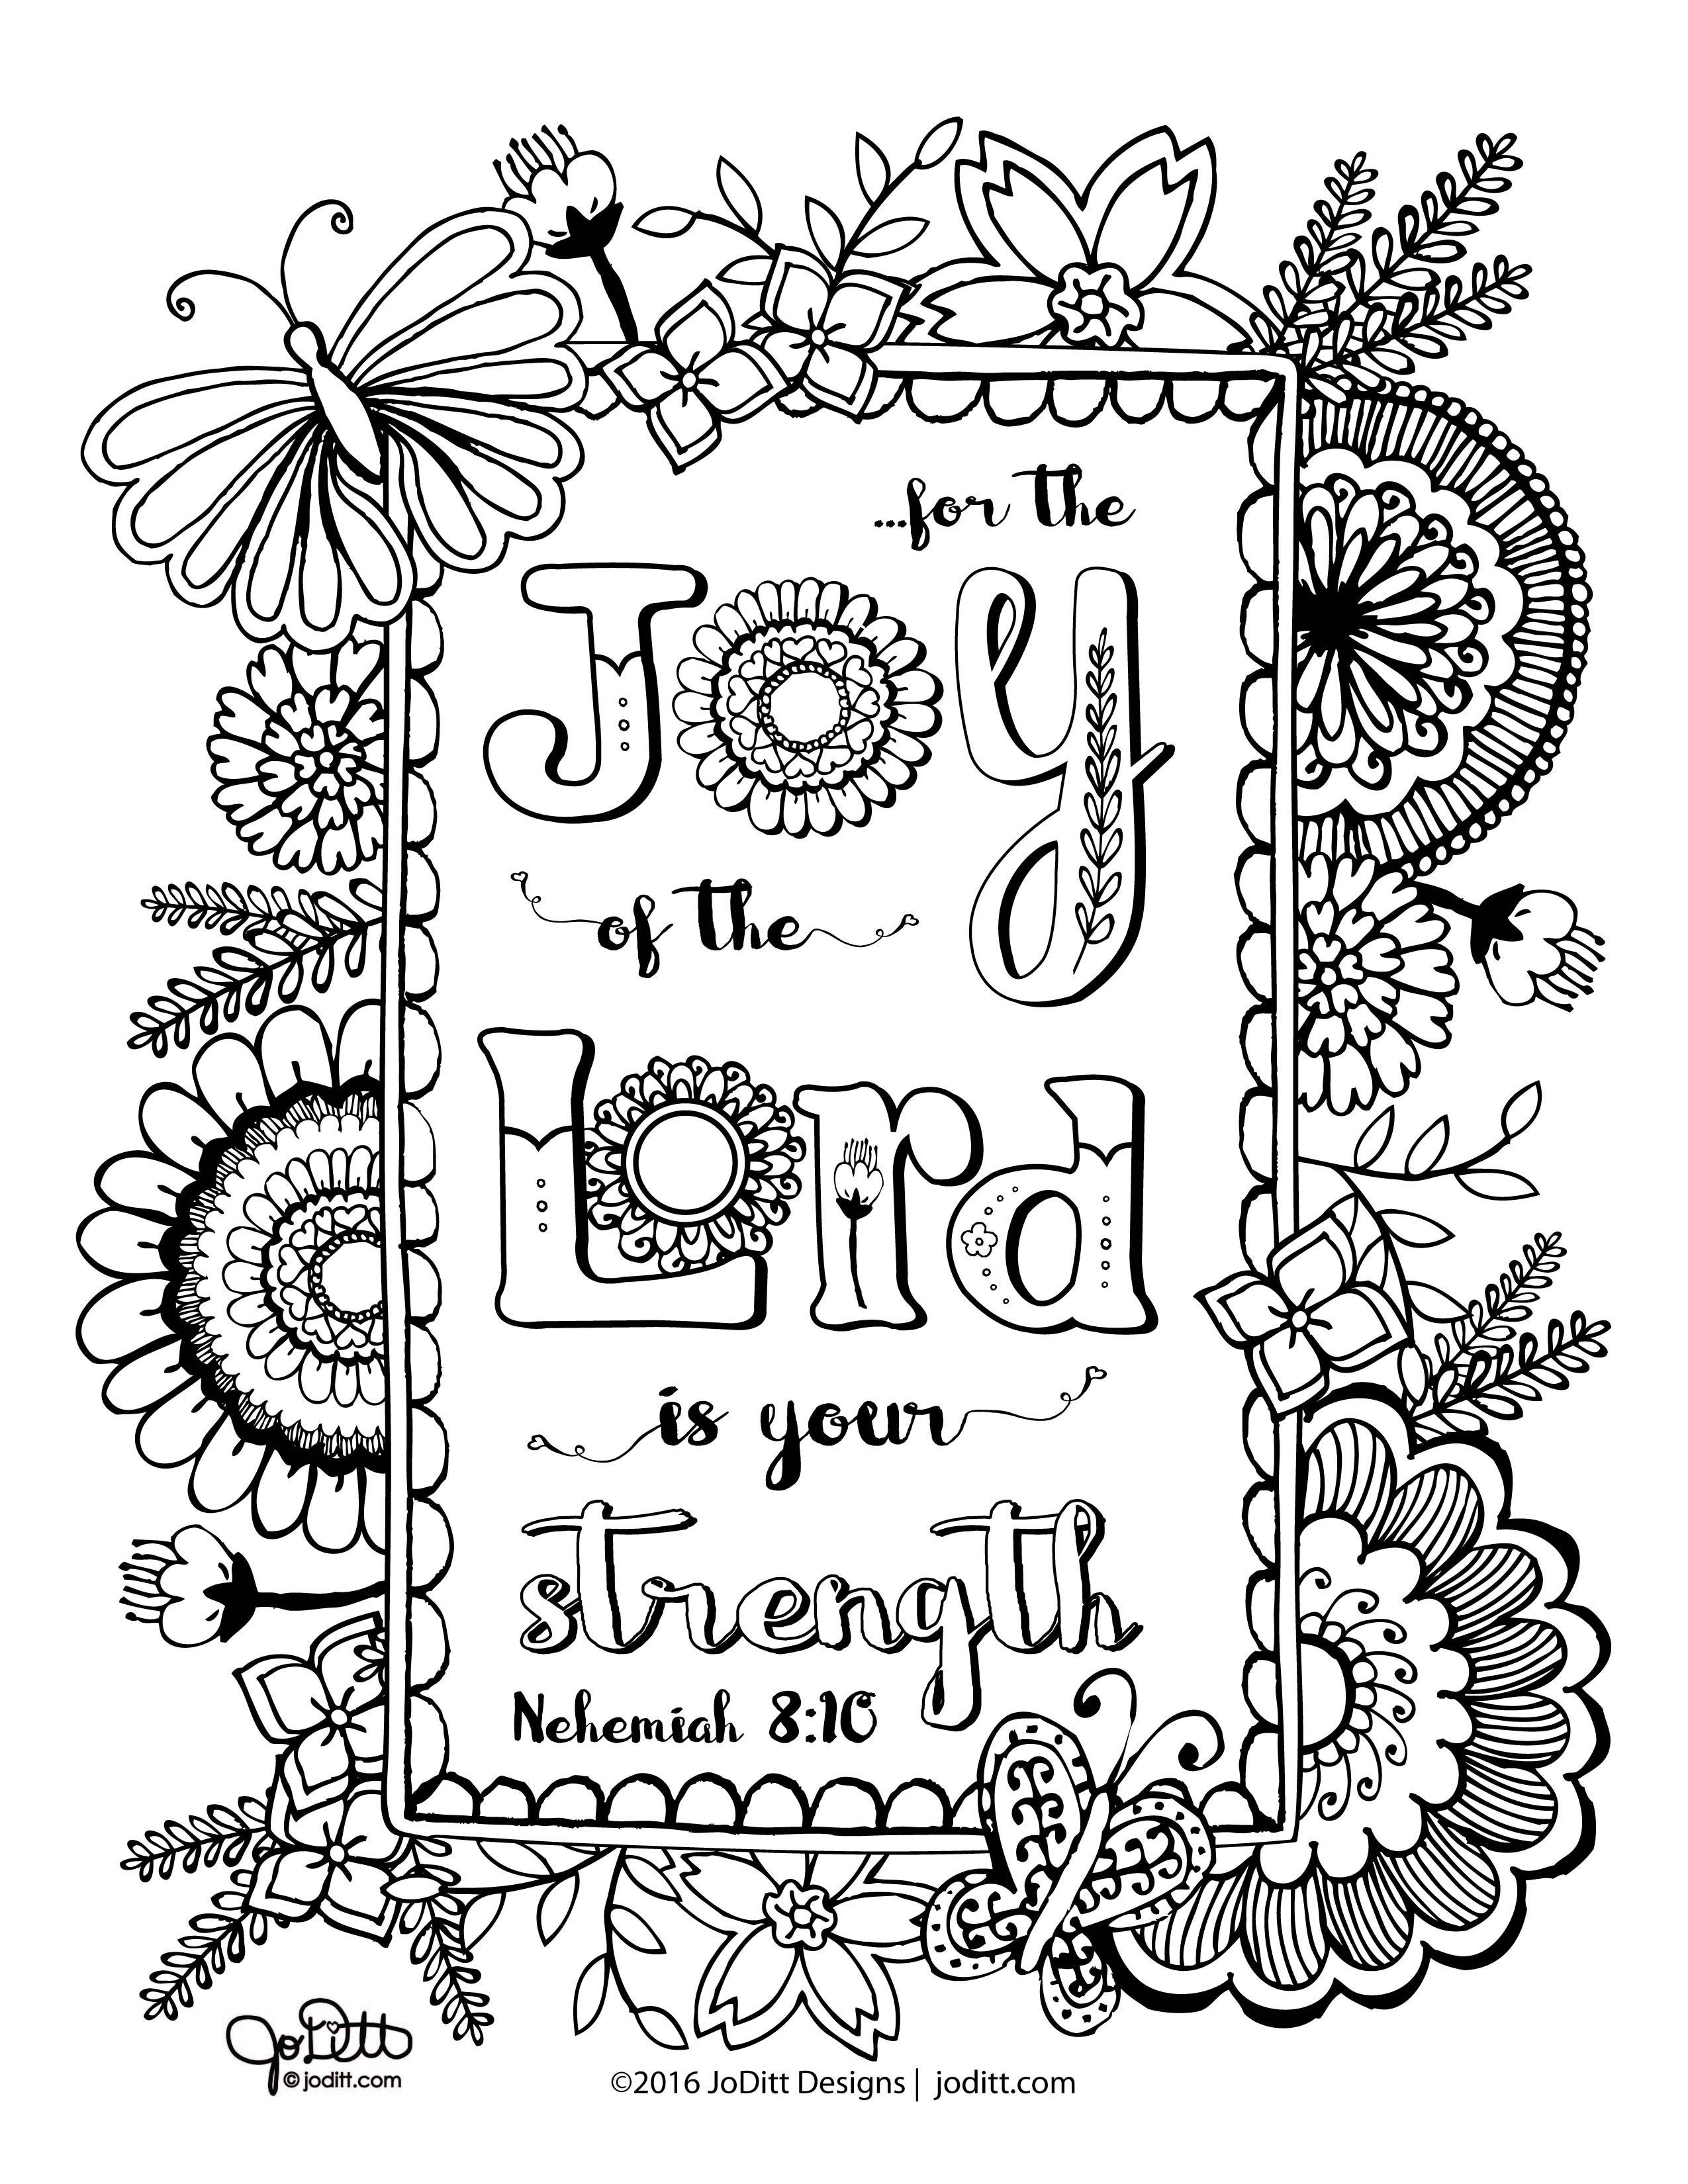 Nehemiah 8 Coloring Pages ~ Coloring Pages World